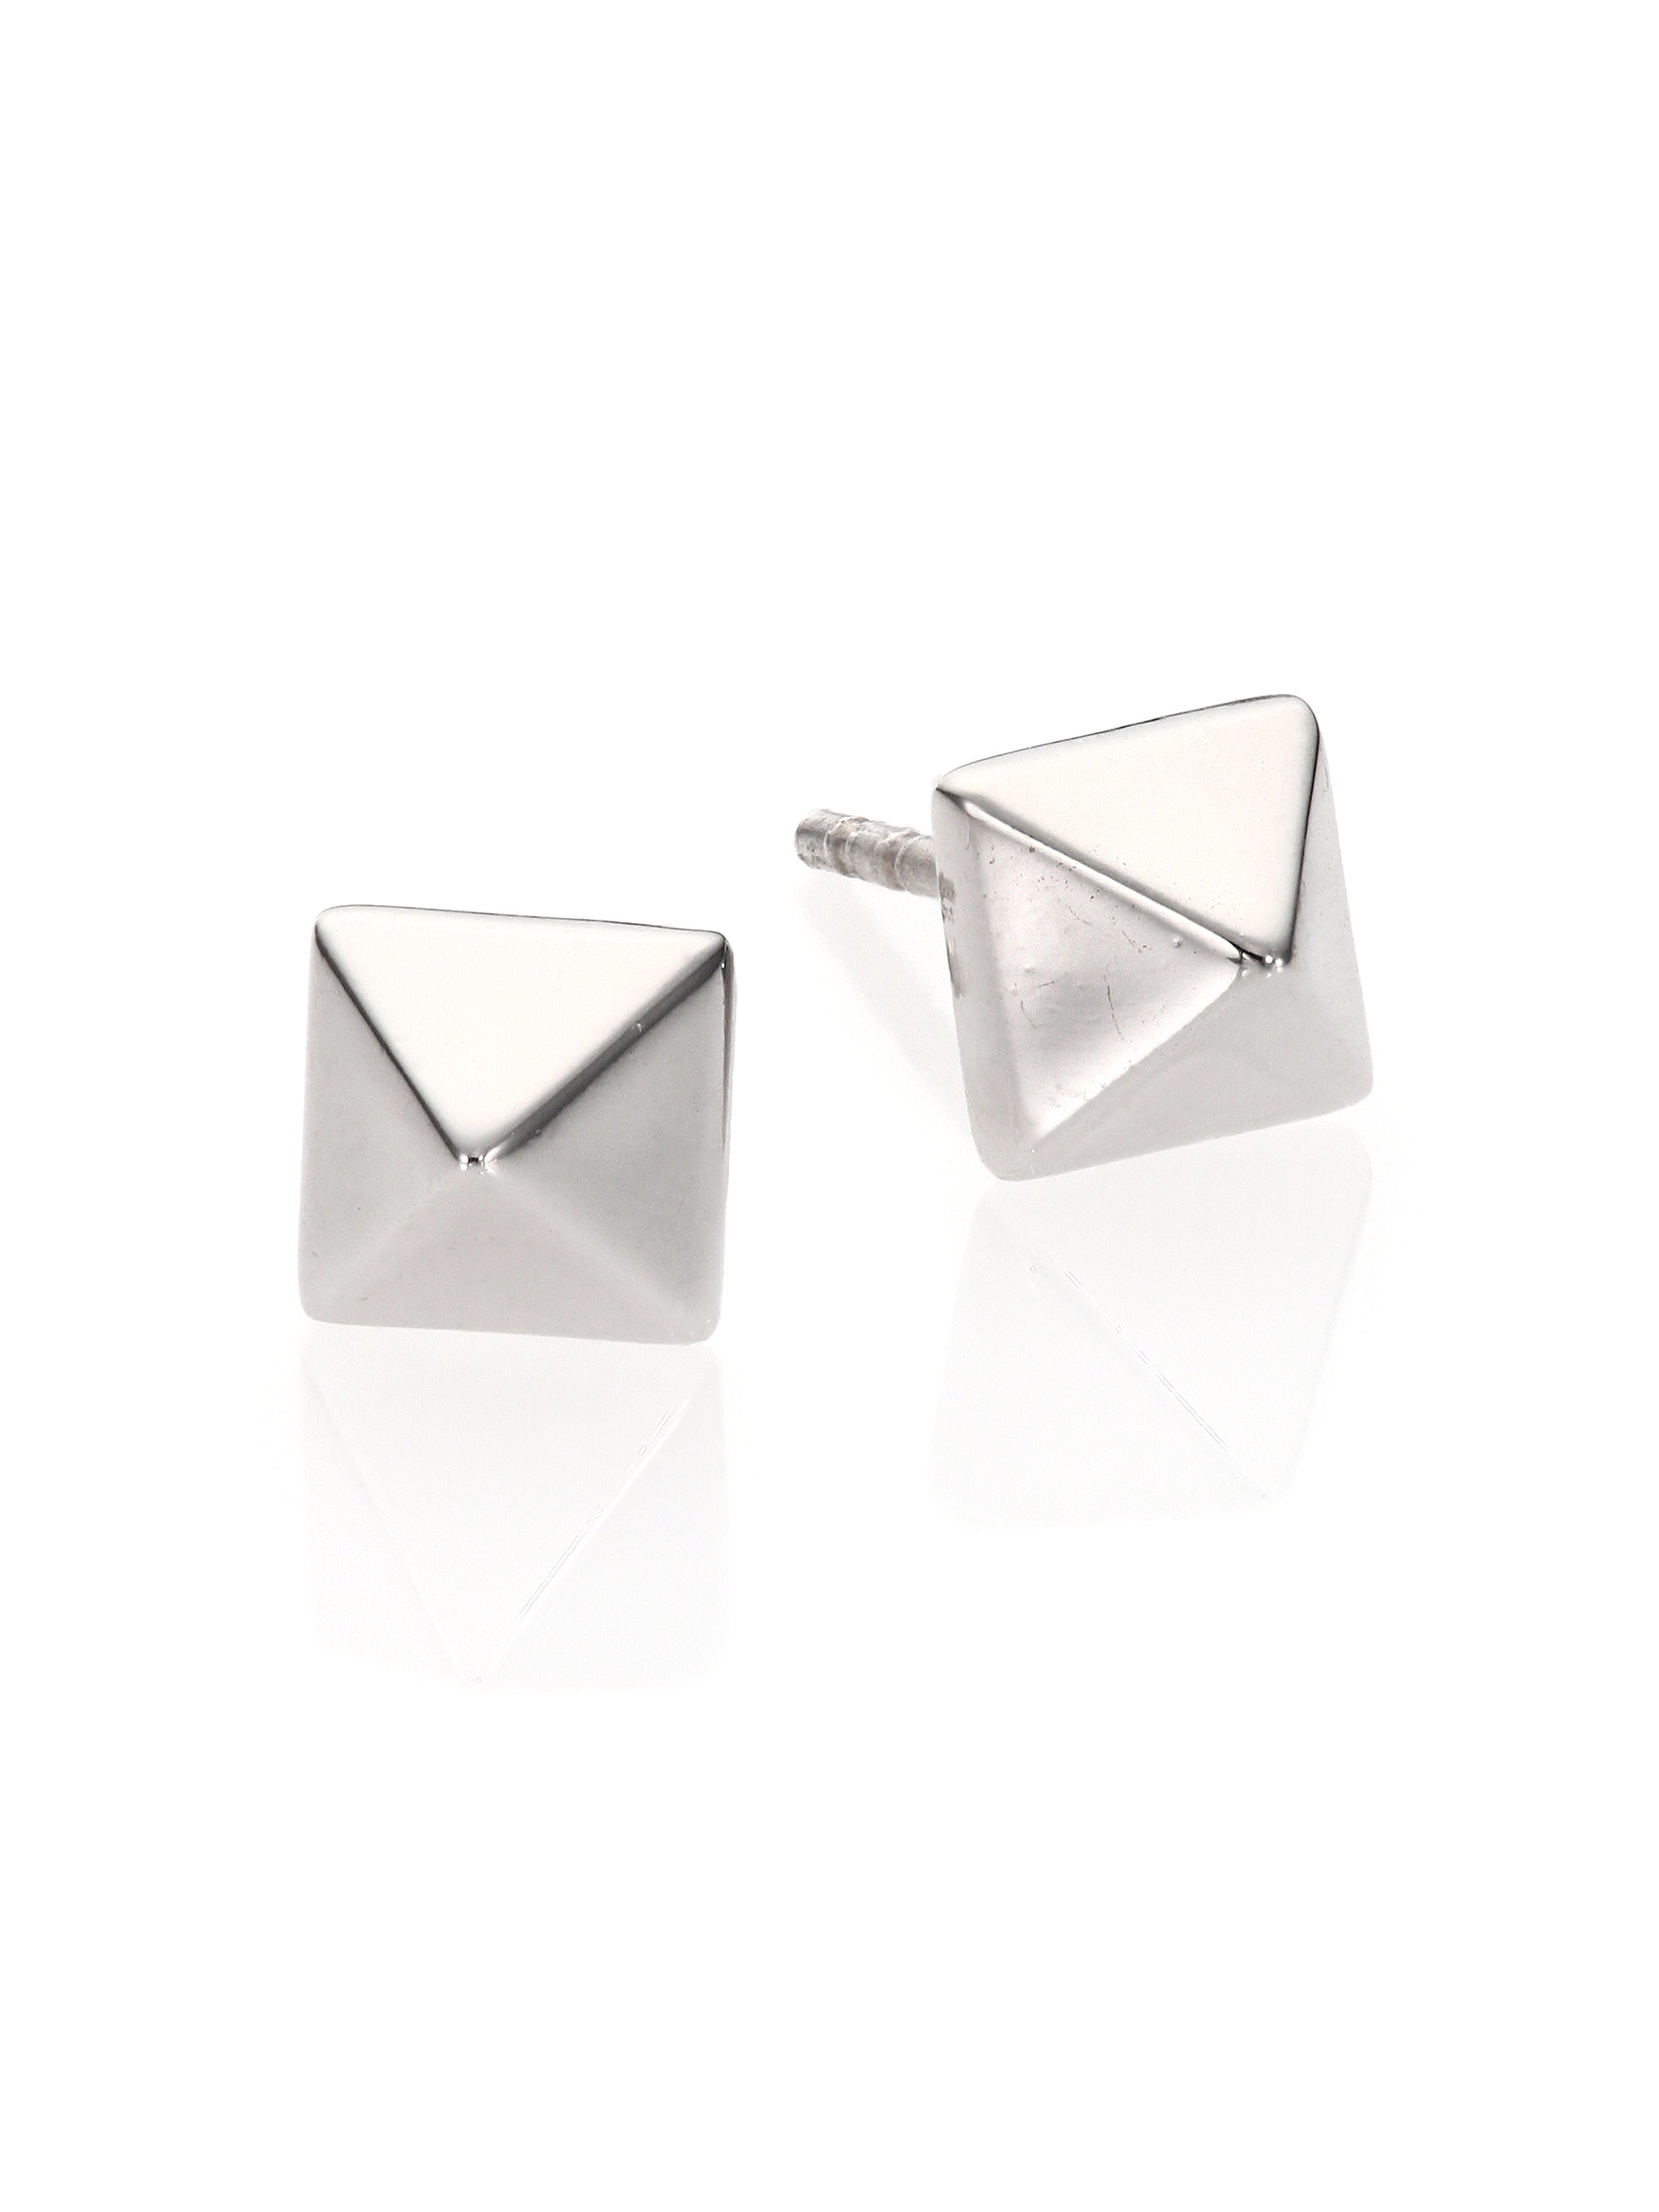 pin stud buy products at andrew los pyramid angeles online bunney union